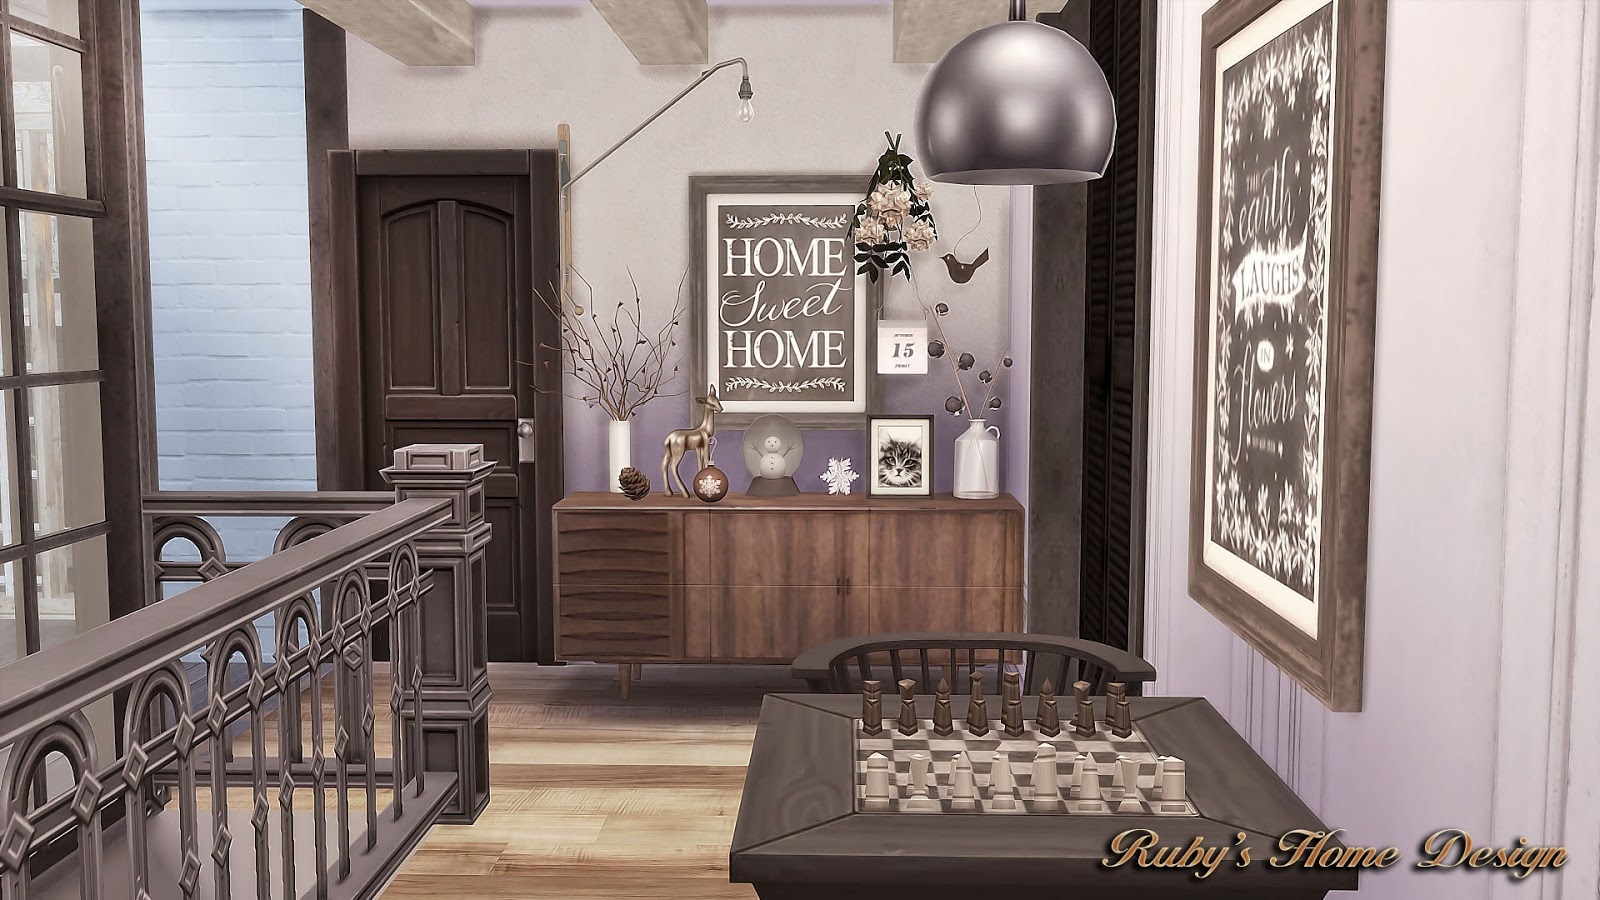 Sims4 deli amp grocery store ruby s home design - Sims4 Neutral Chic House No Download Link Sims4 Neutral Chic House No Download Link Ruby